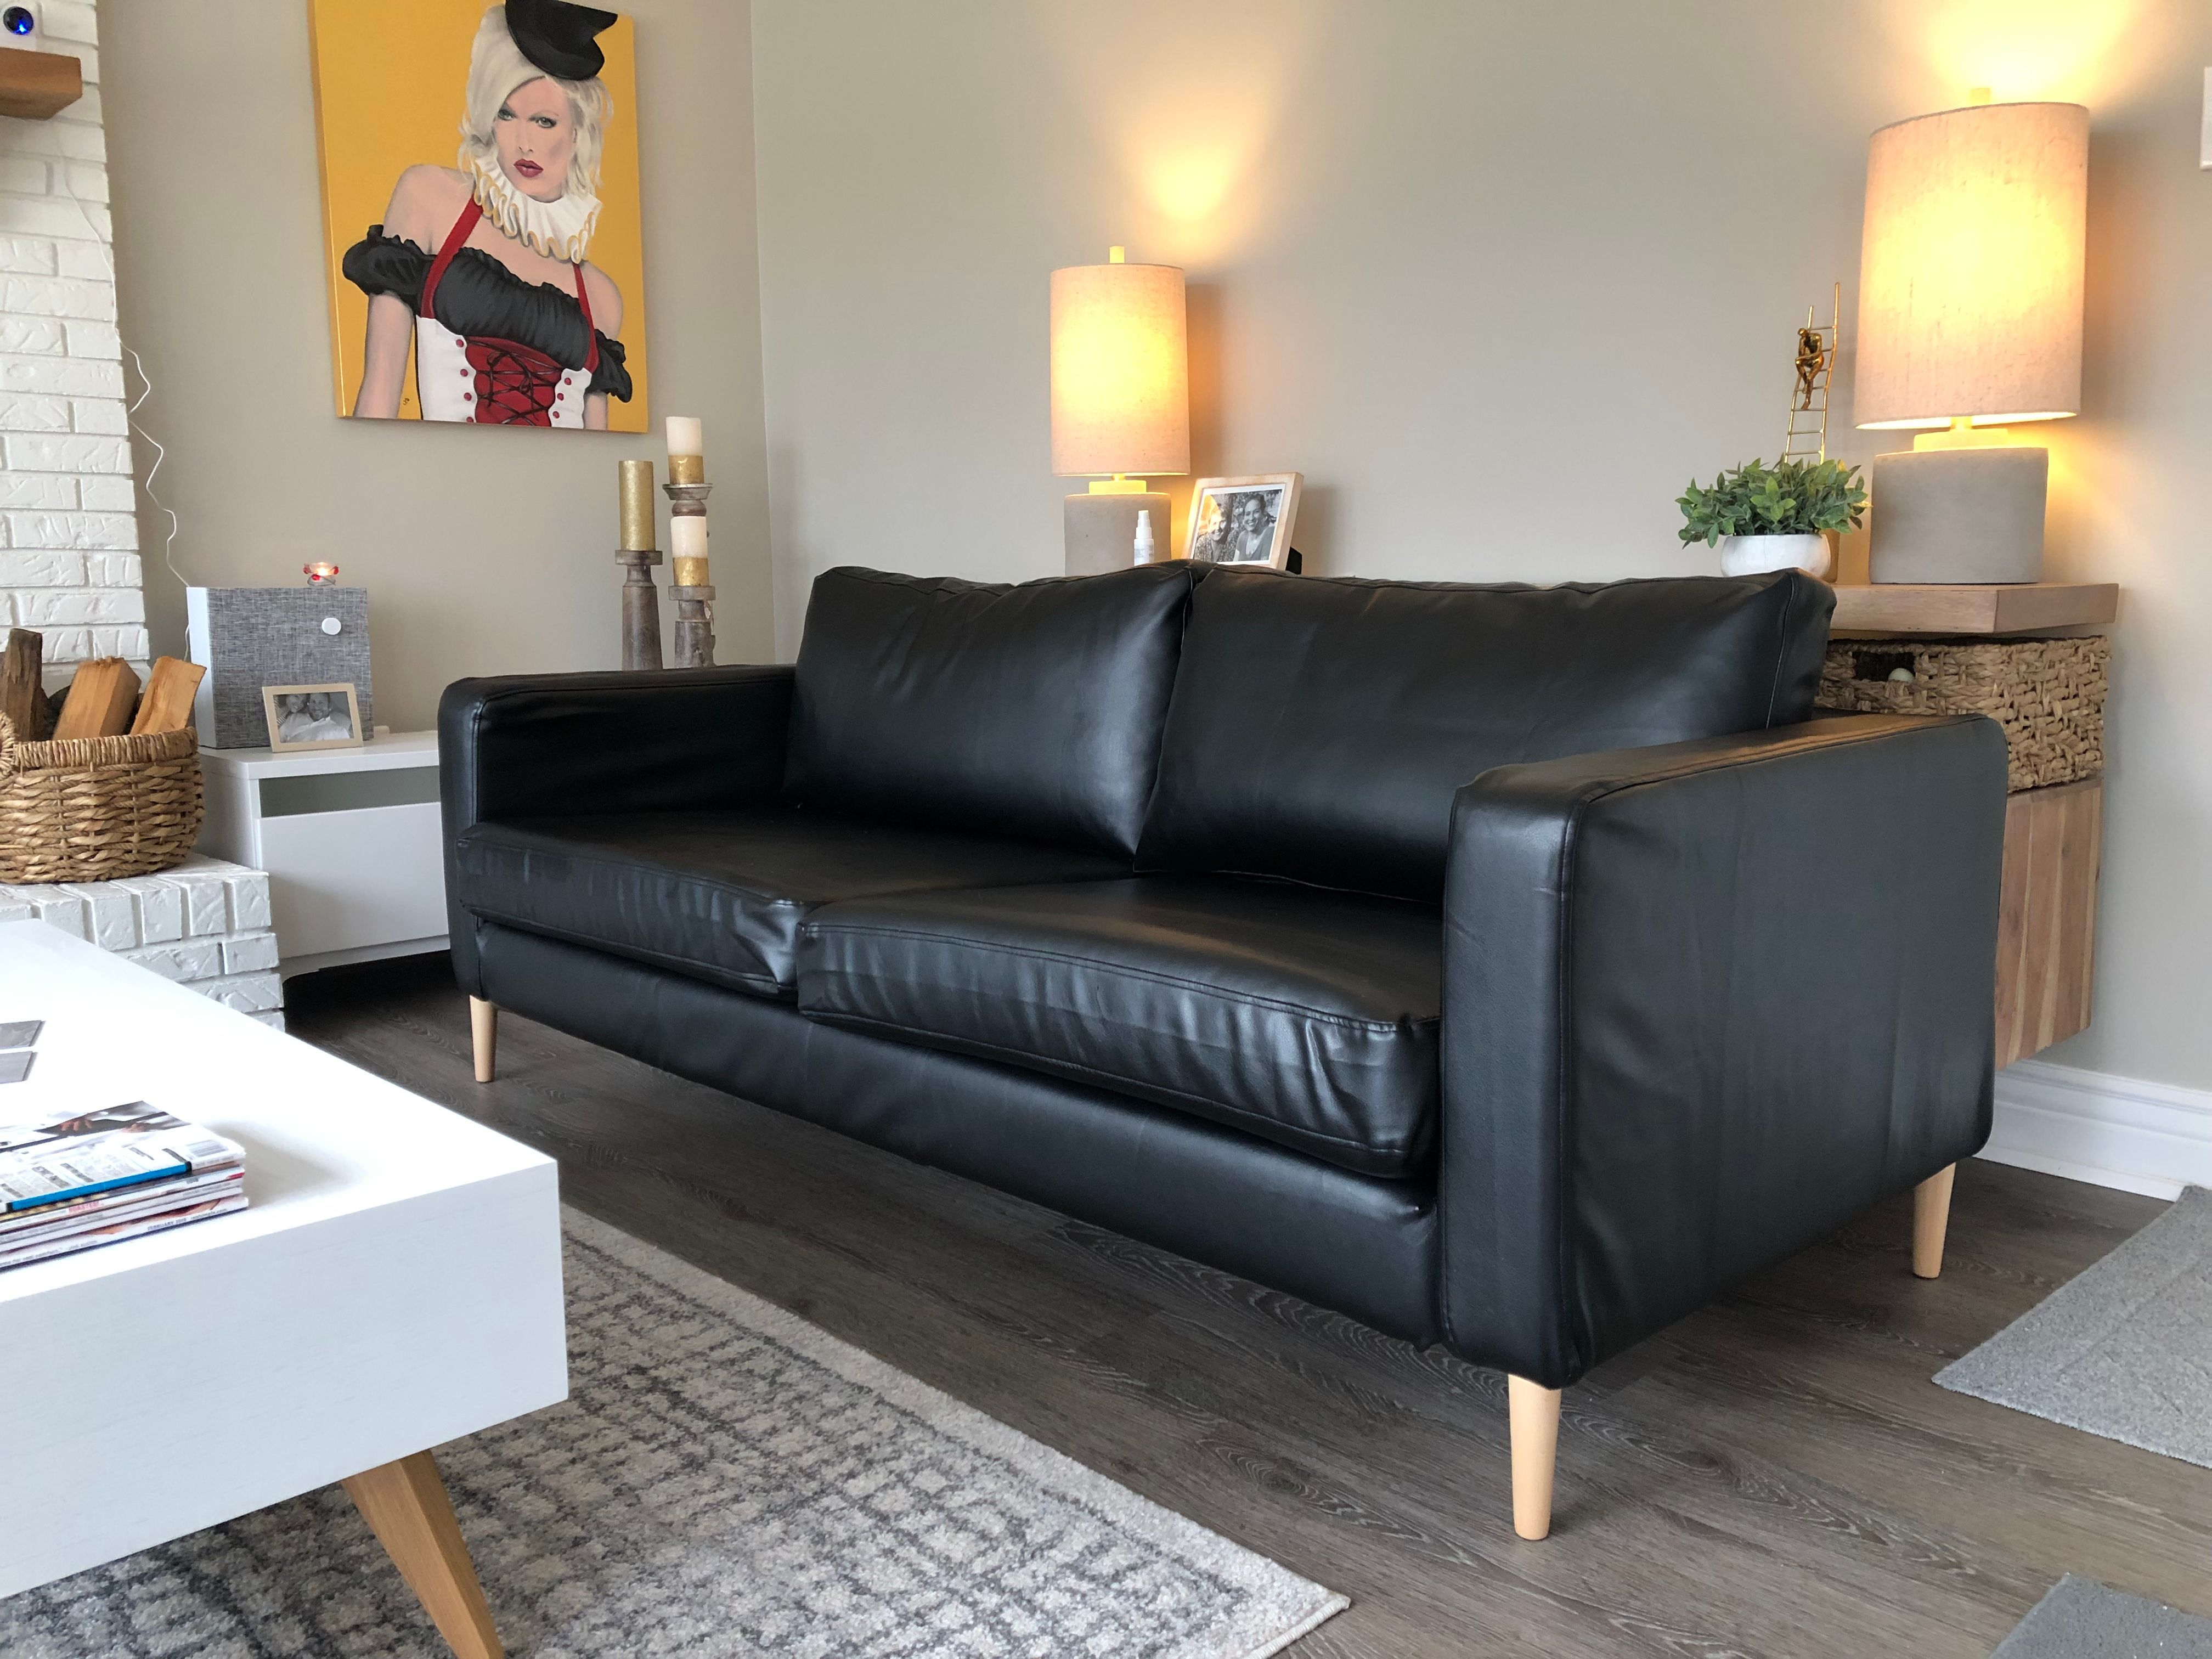 Ikea Karlstad Sofa In Comfort Works Modena Black Leather Sofa Slipcovers Looking To Have Sofa Slipcovers I Sofa Decor Ikea Karlstad Sofa Ikea Leather Sofa